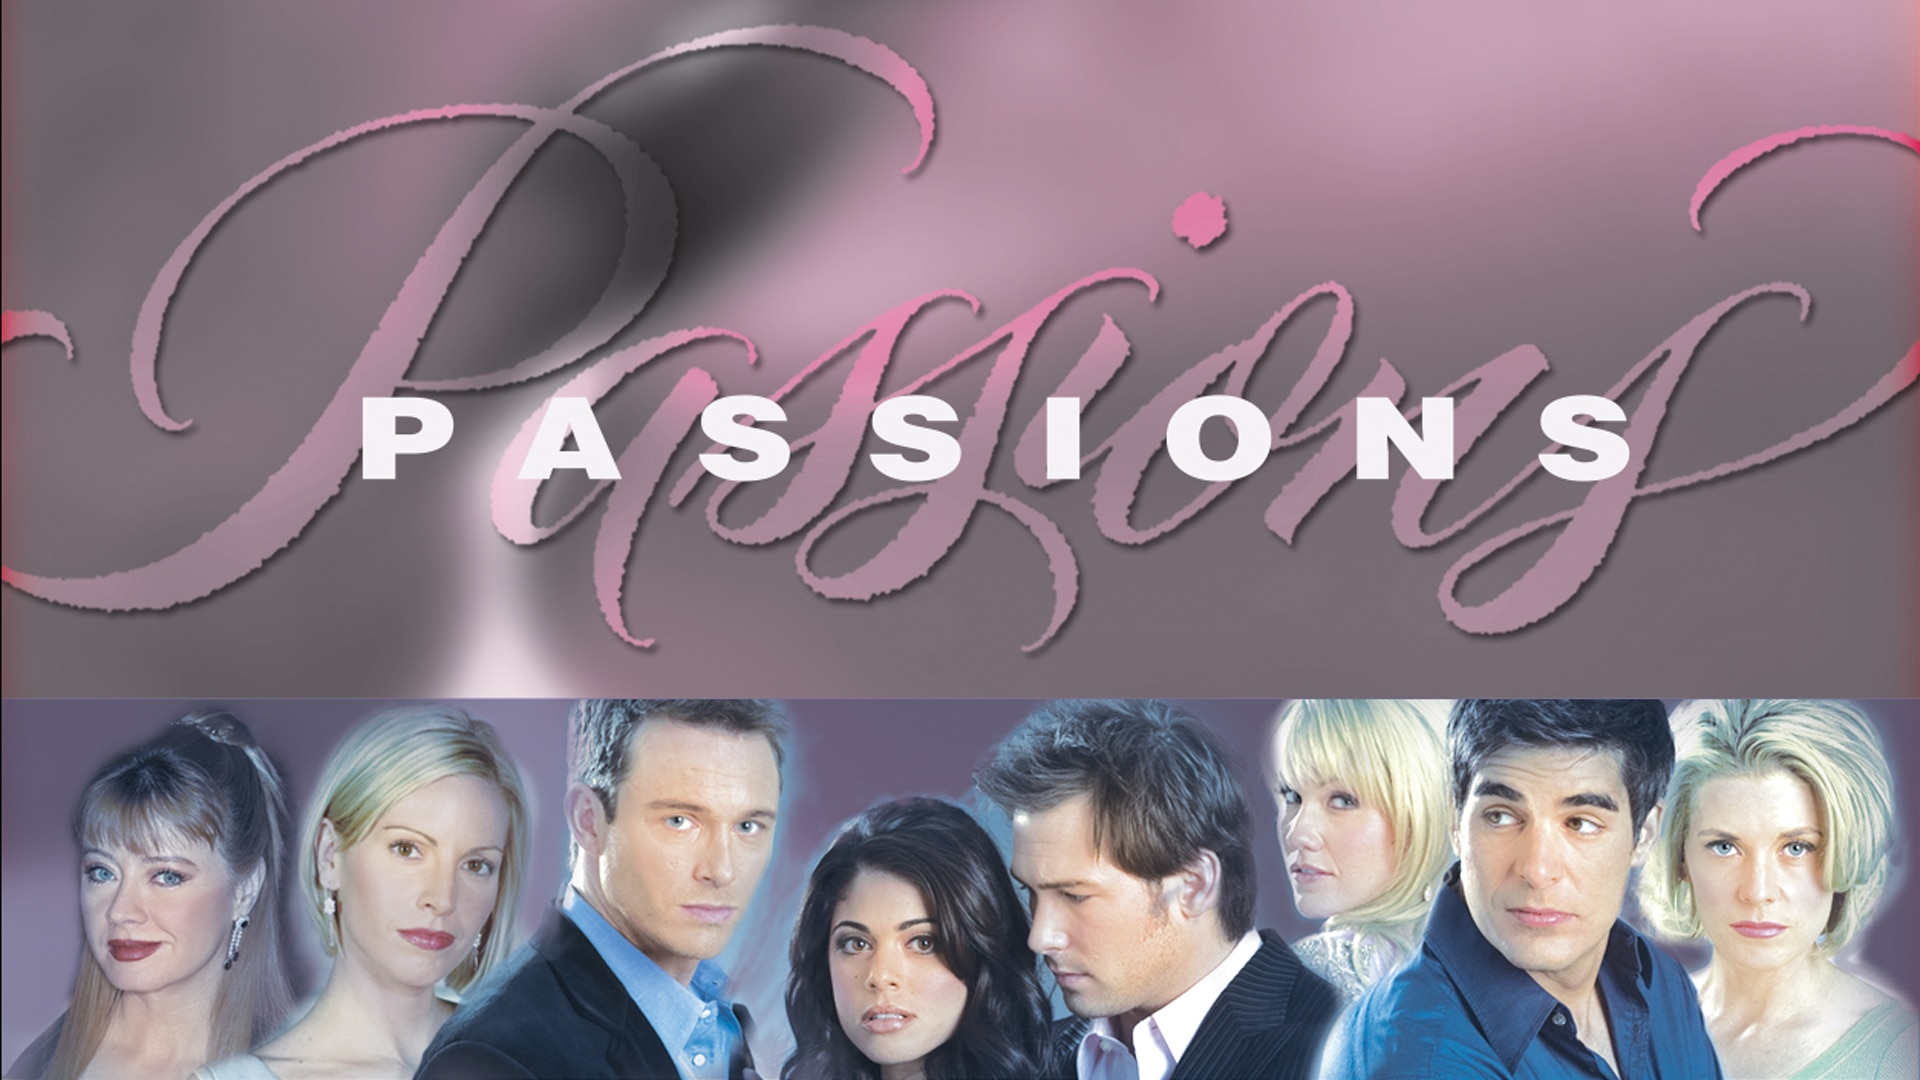 where can i watch passions online for free